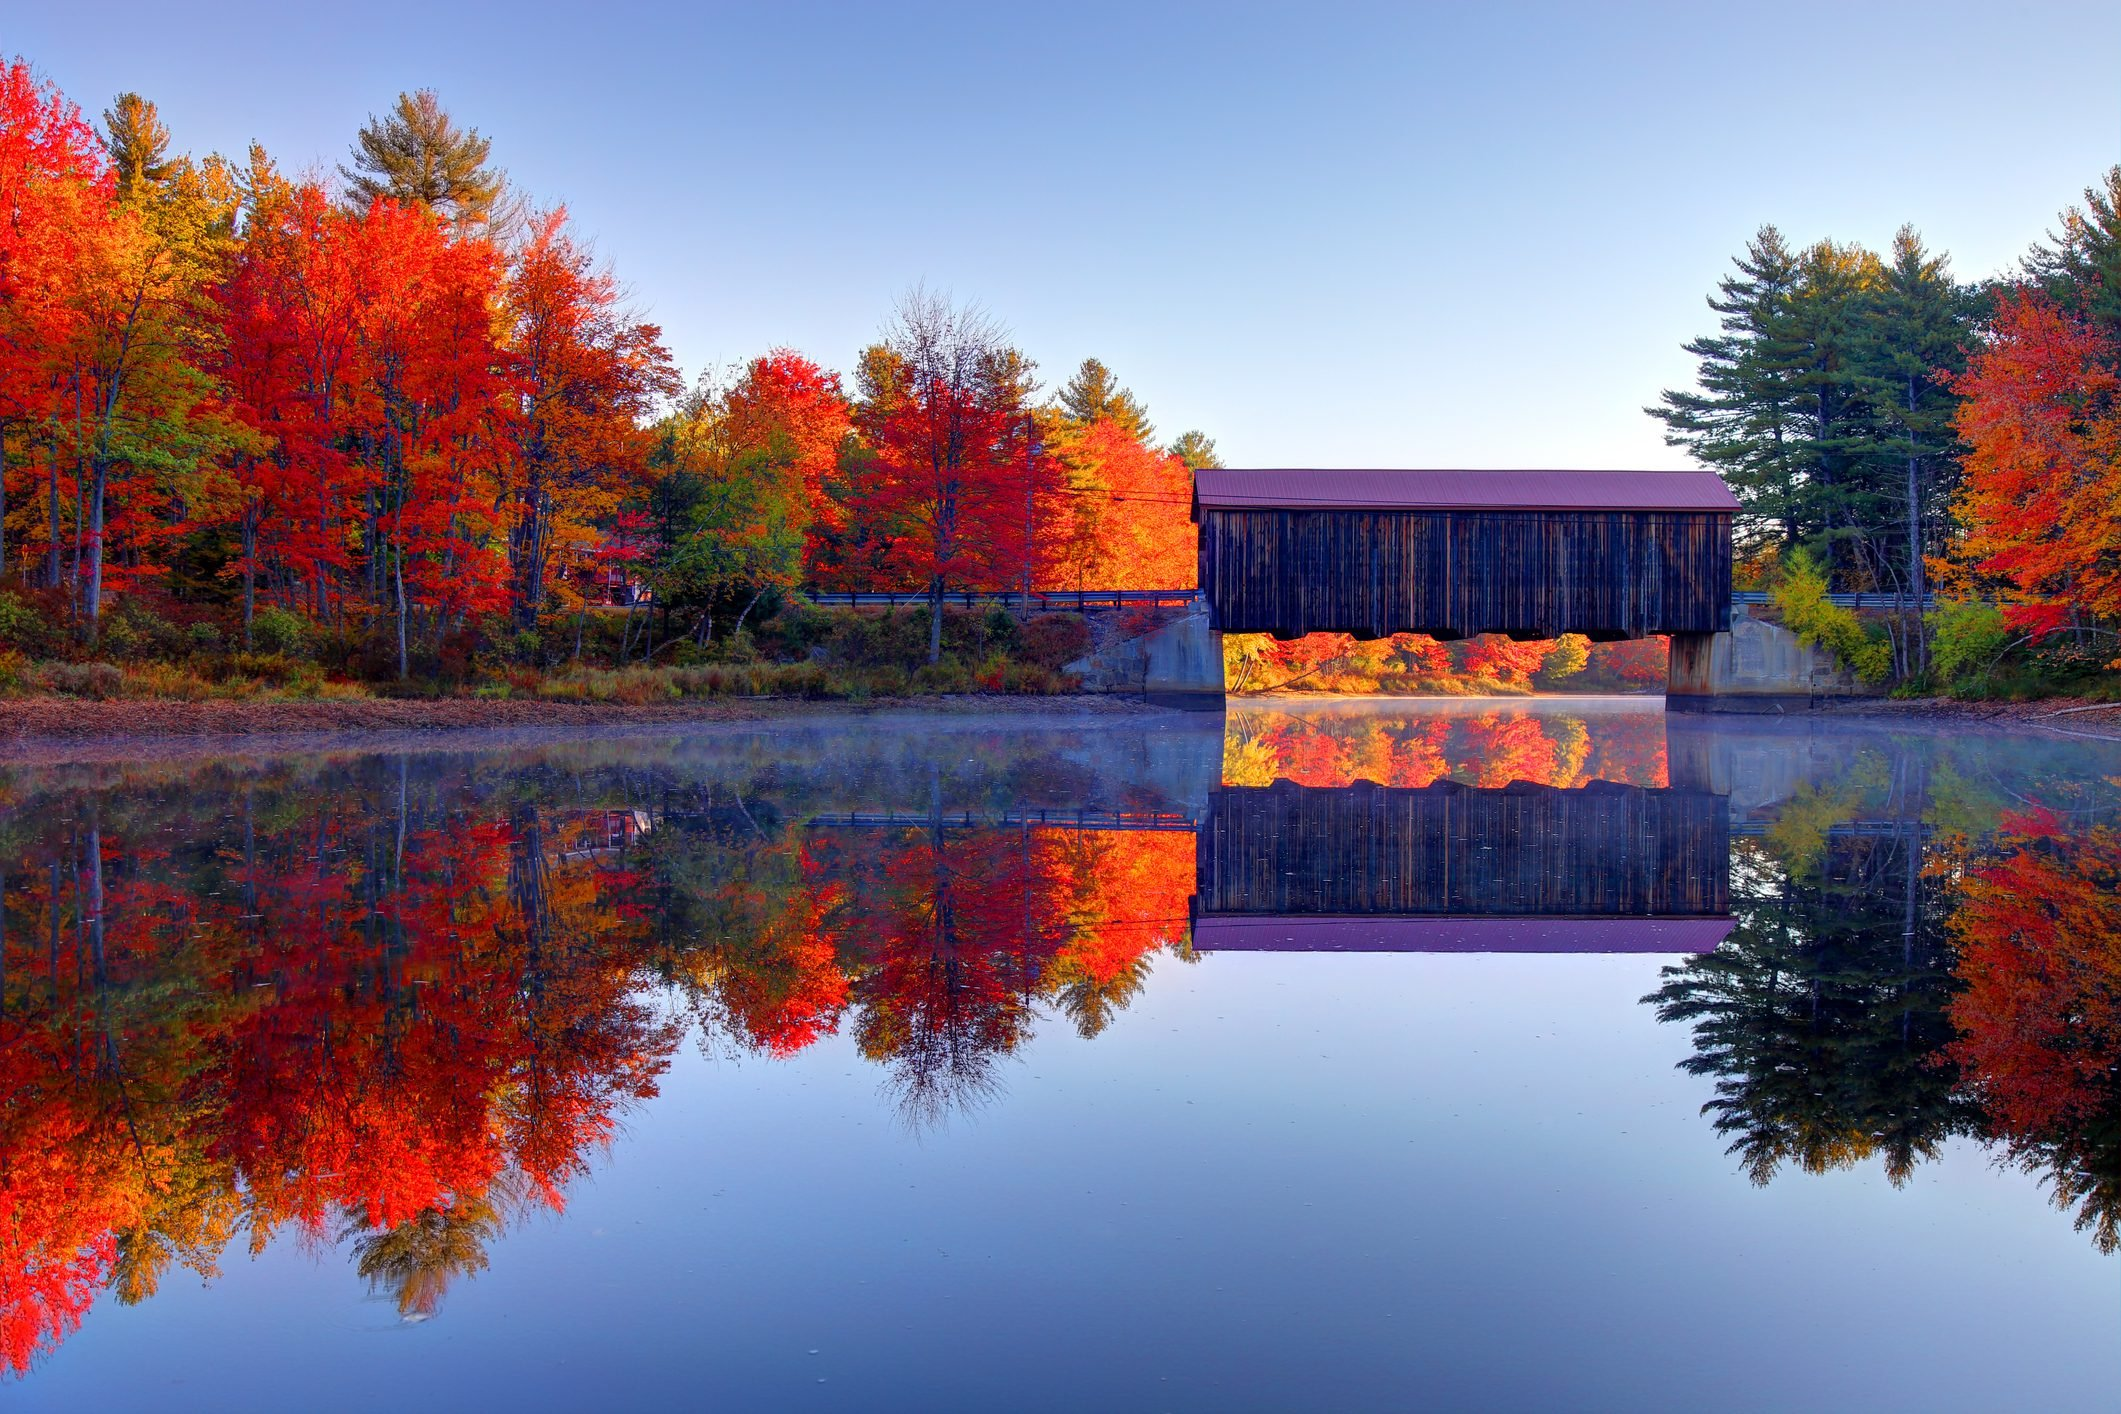 County Covered Bridge near Greenfield, New Hampshire